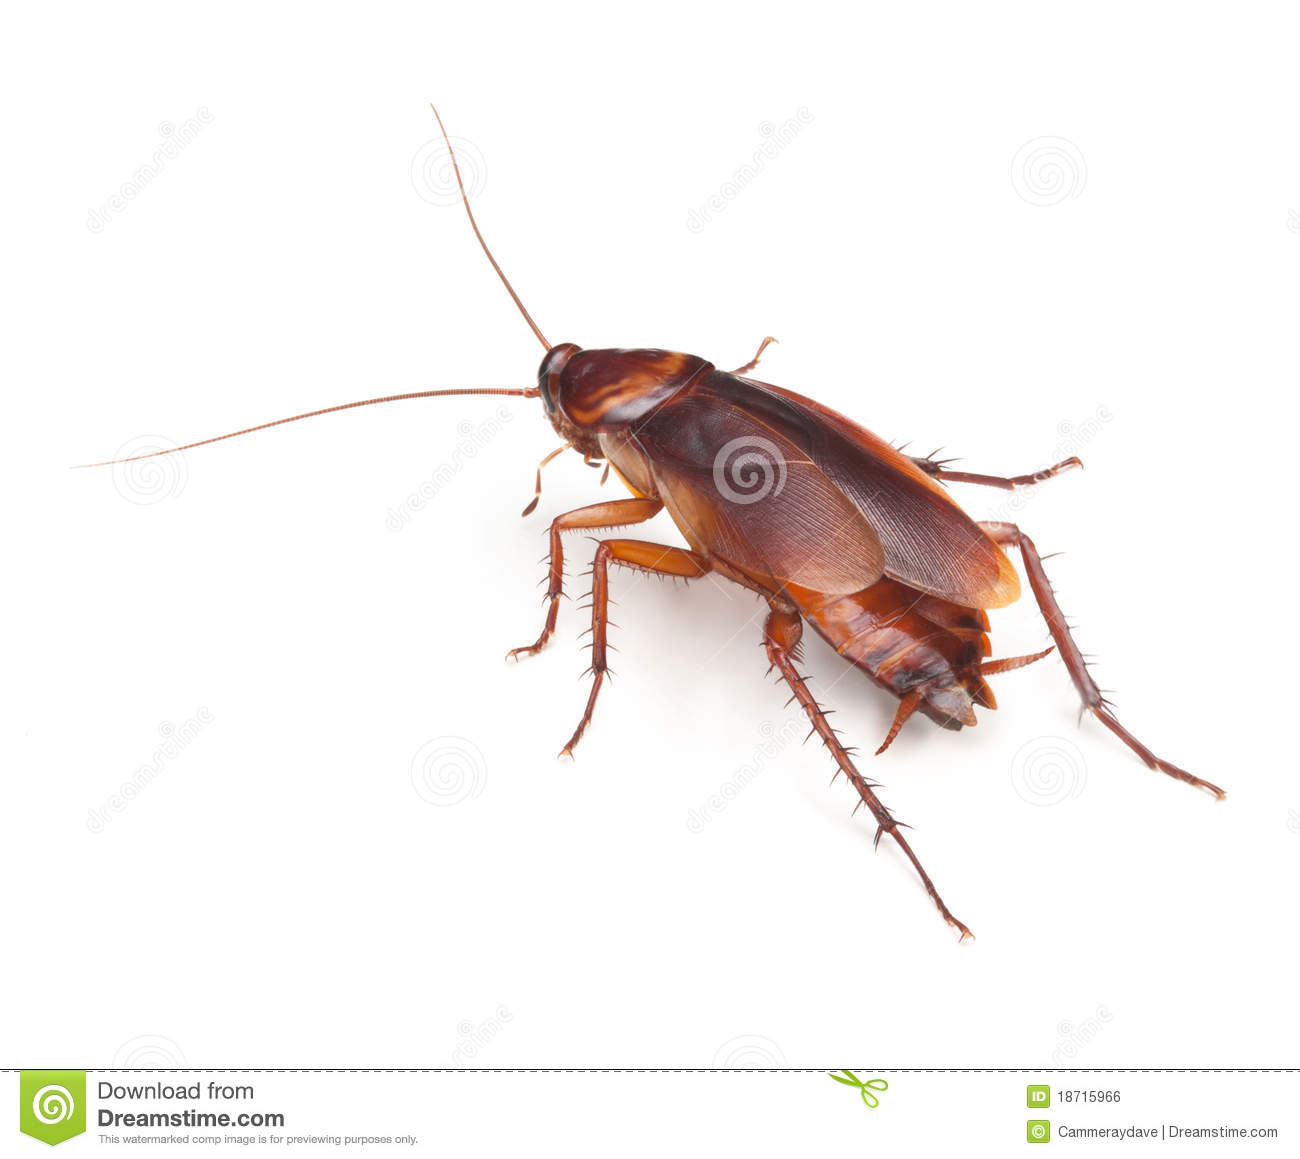 Cockroach Insect Roach Pest Control Royalty Free Stock